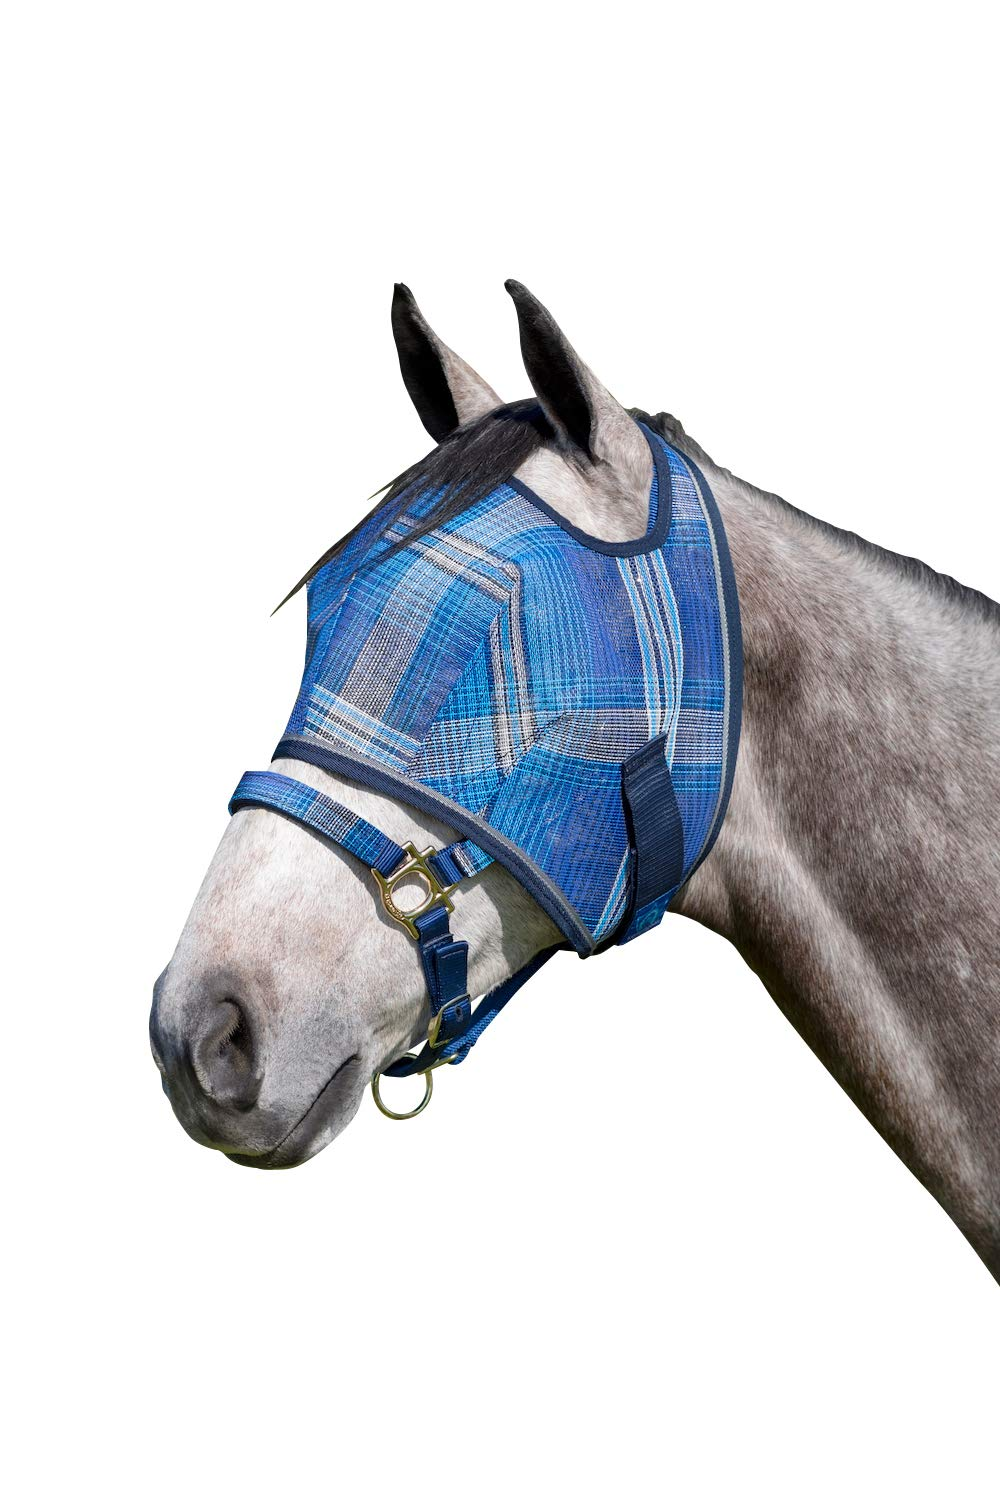 Kensington Fly Mask Web Trim - Protects Horses Face and Eyes from Biting Insects and UV Rays While Allowing Full Visibility - Ears and Forelock Able to Come Through The Mask (Large, Kentucky Blue) by Kensington Protective Products